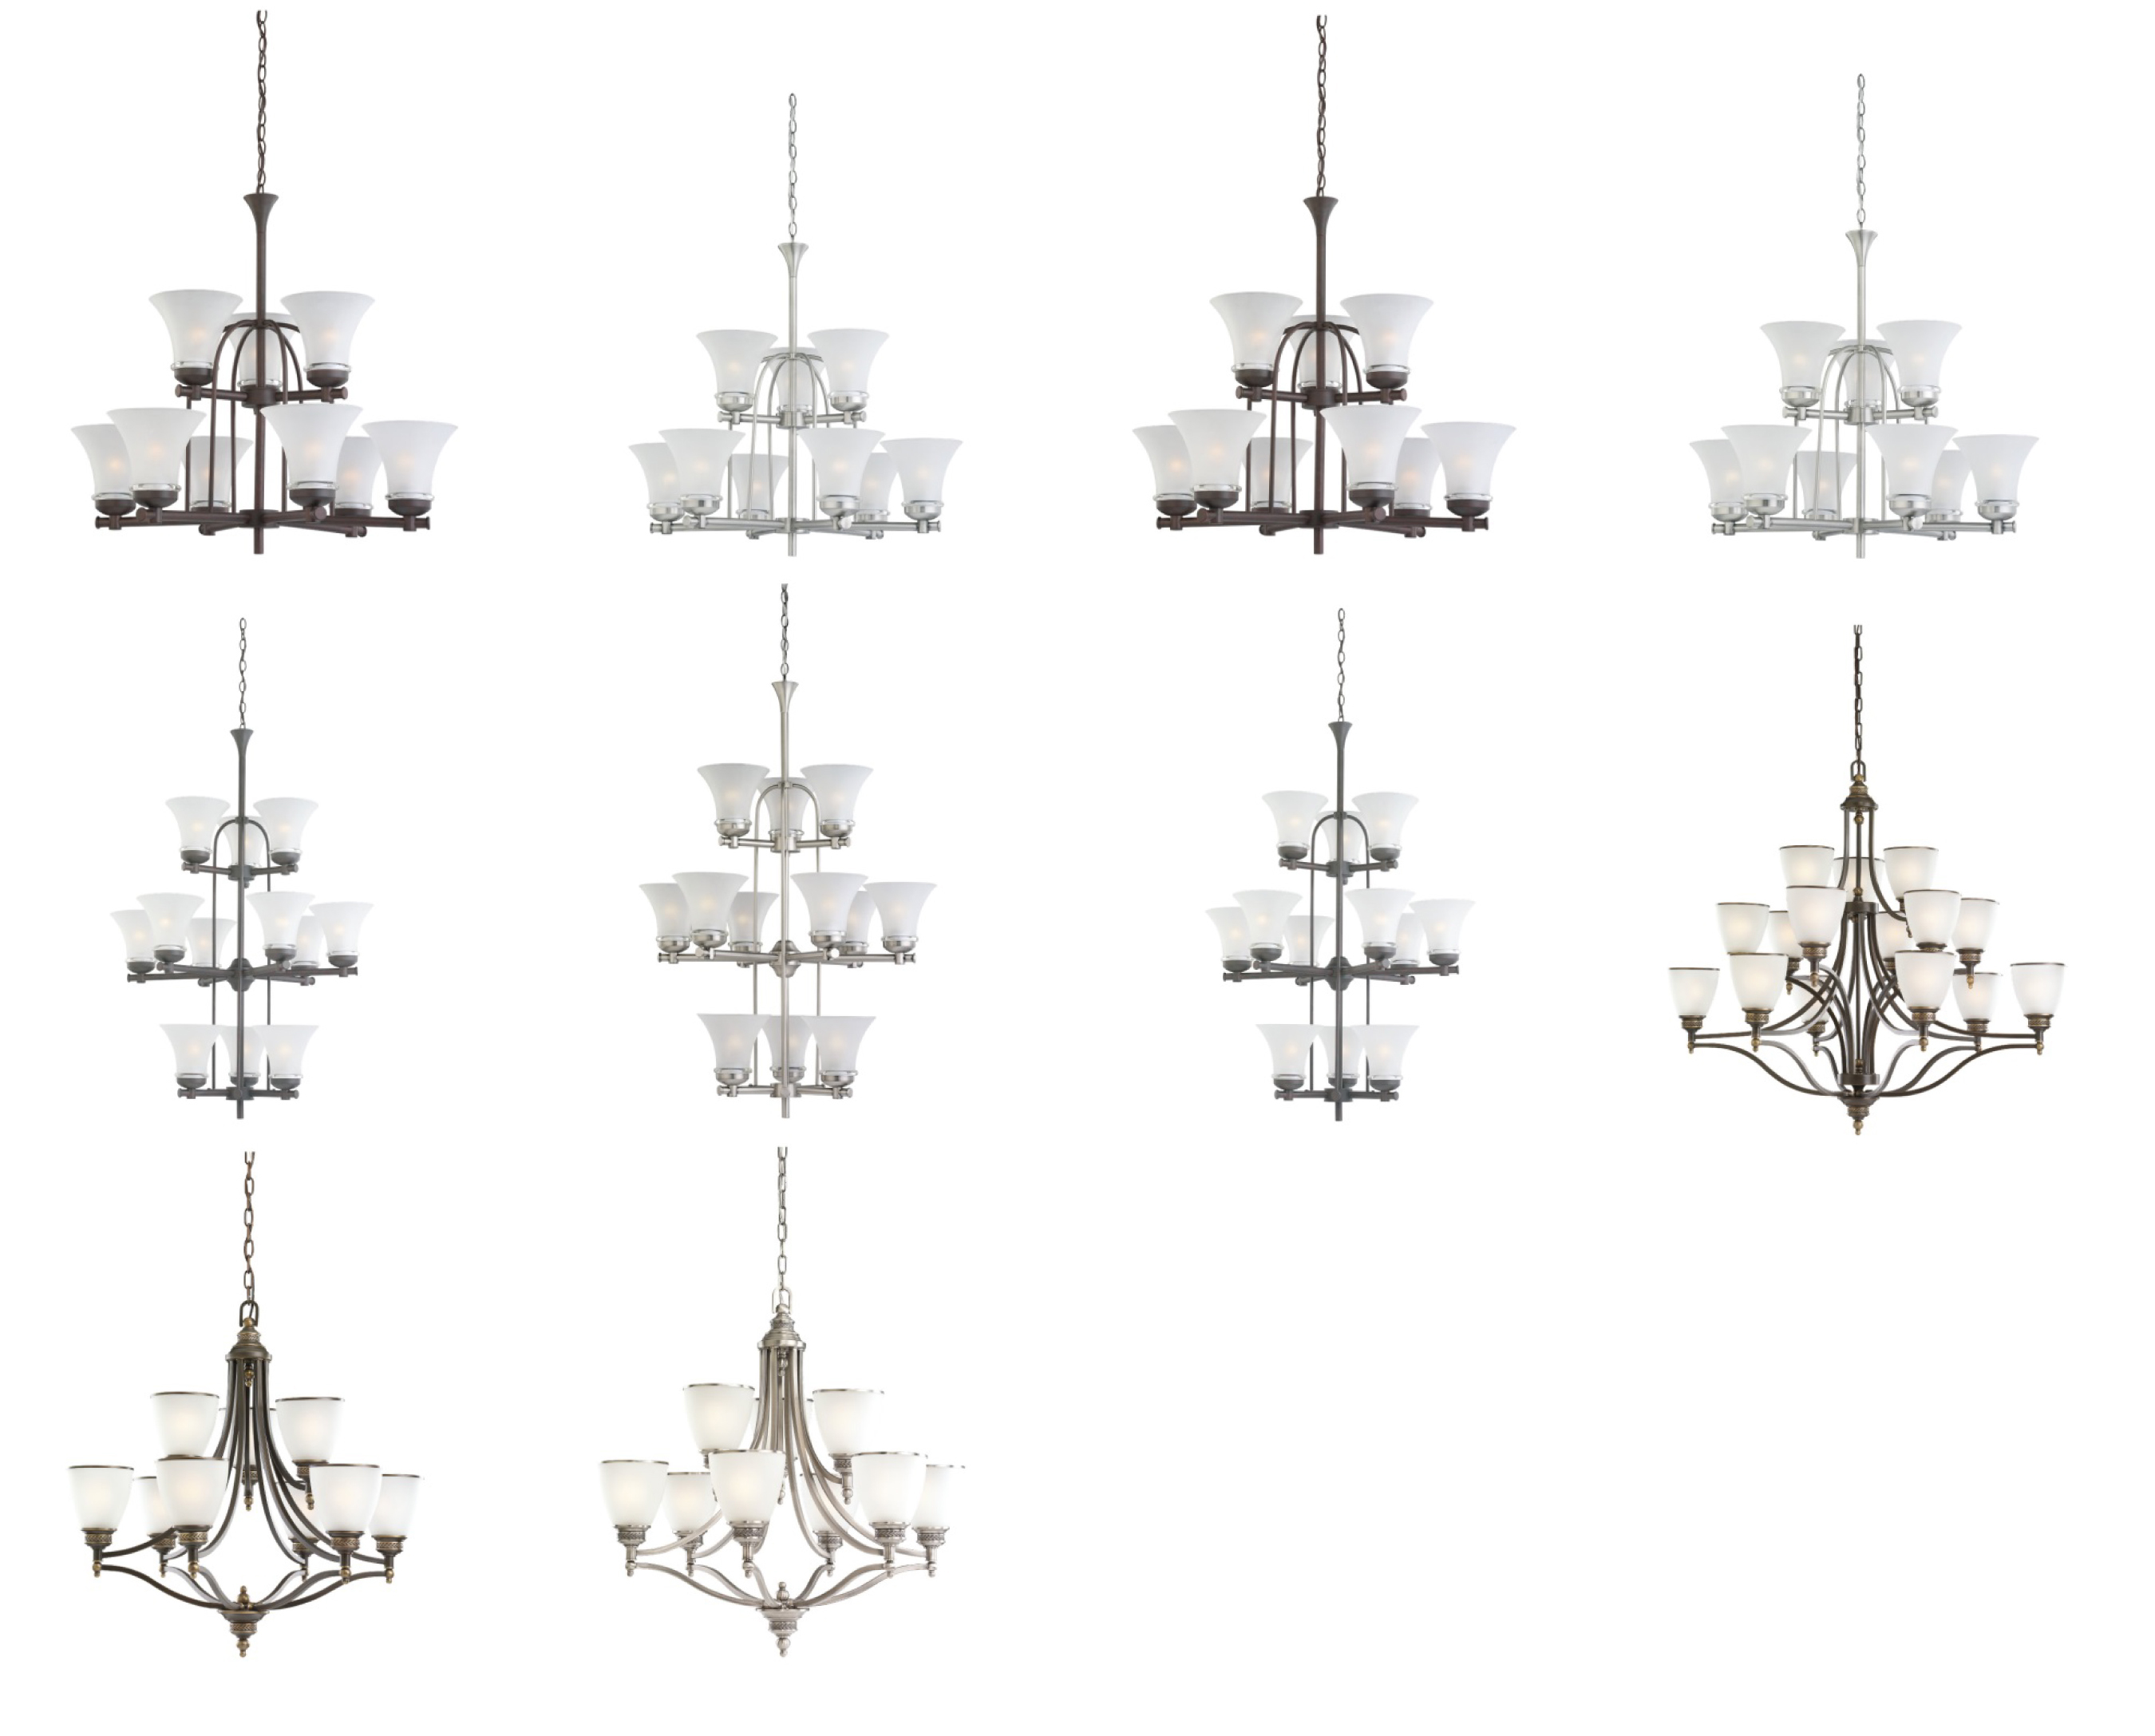 10 Versions of recalled Seagull Chandeliers. Please see chart in recall for full images of  sc 1 st  Consumer Product Safety Commission & Sea Gull Lighting Recalls Chandeliers | CPSC.gov azcodes.com